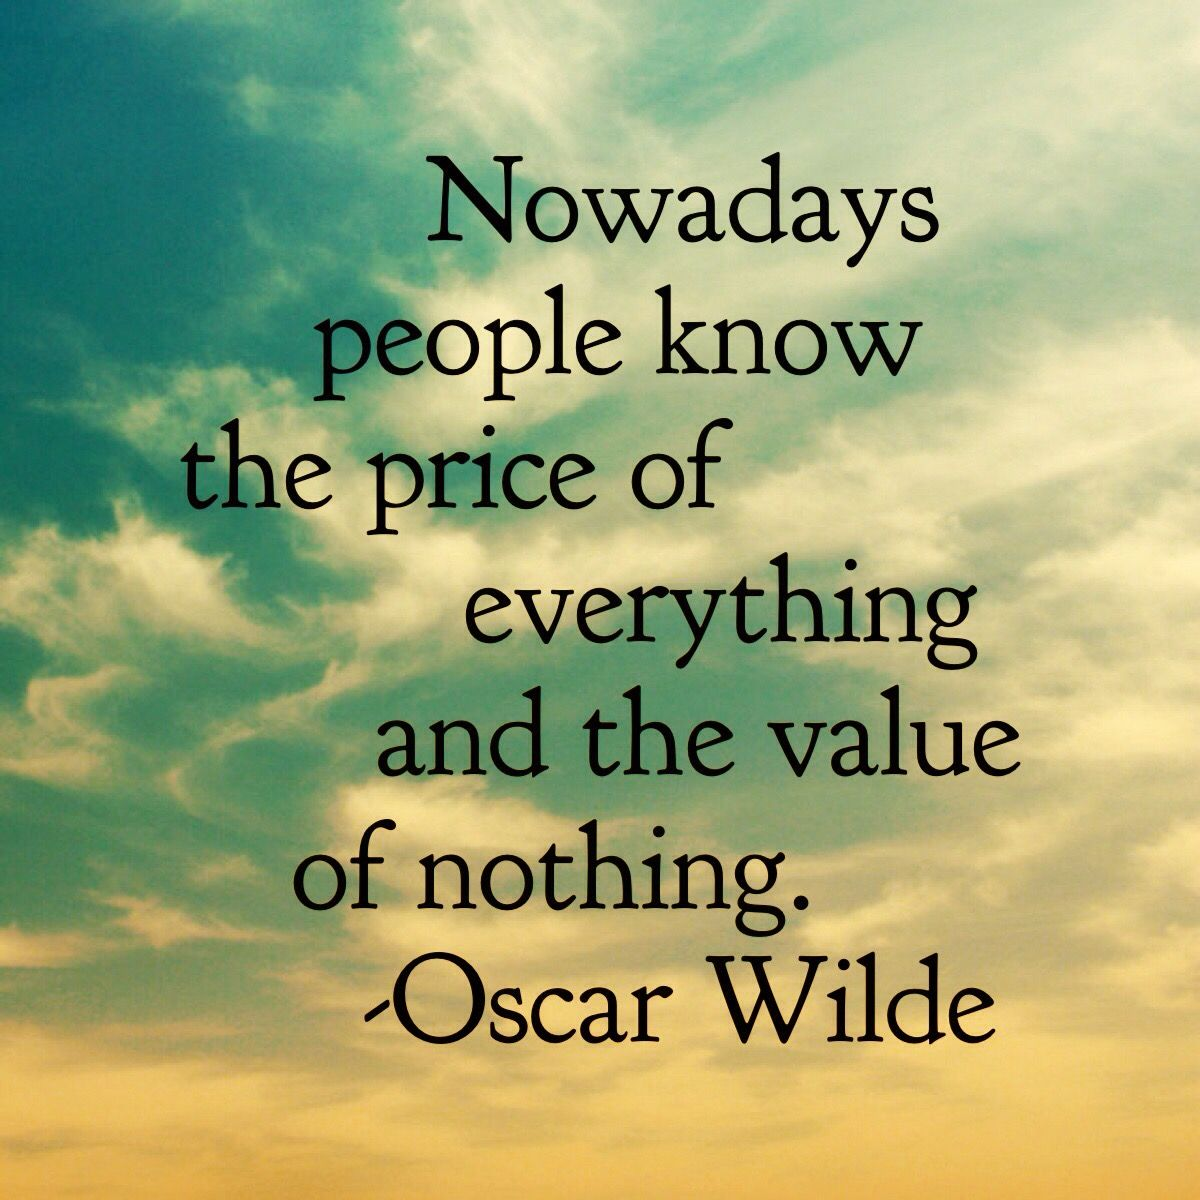 Nowadays people know the price of everything and the value of